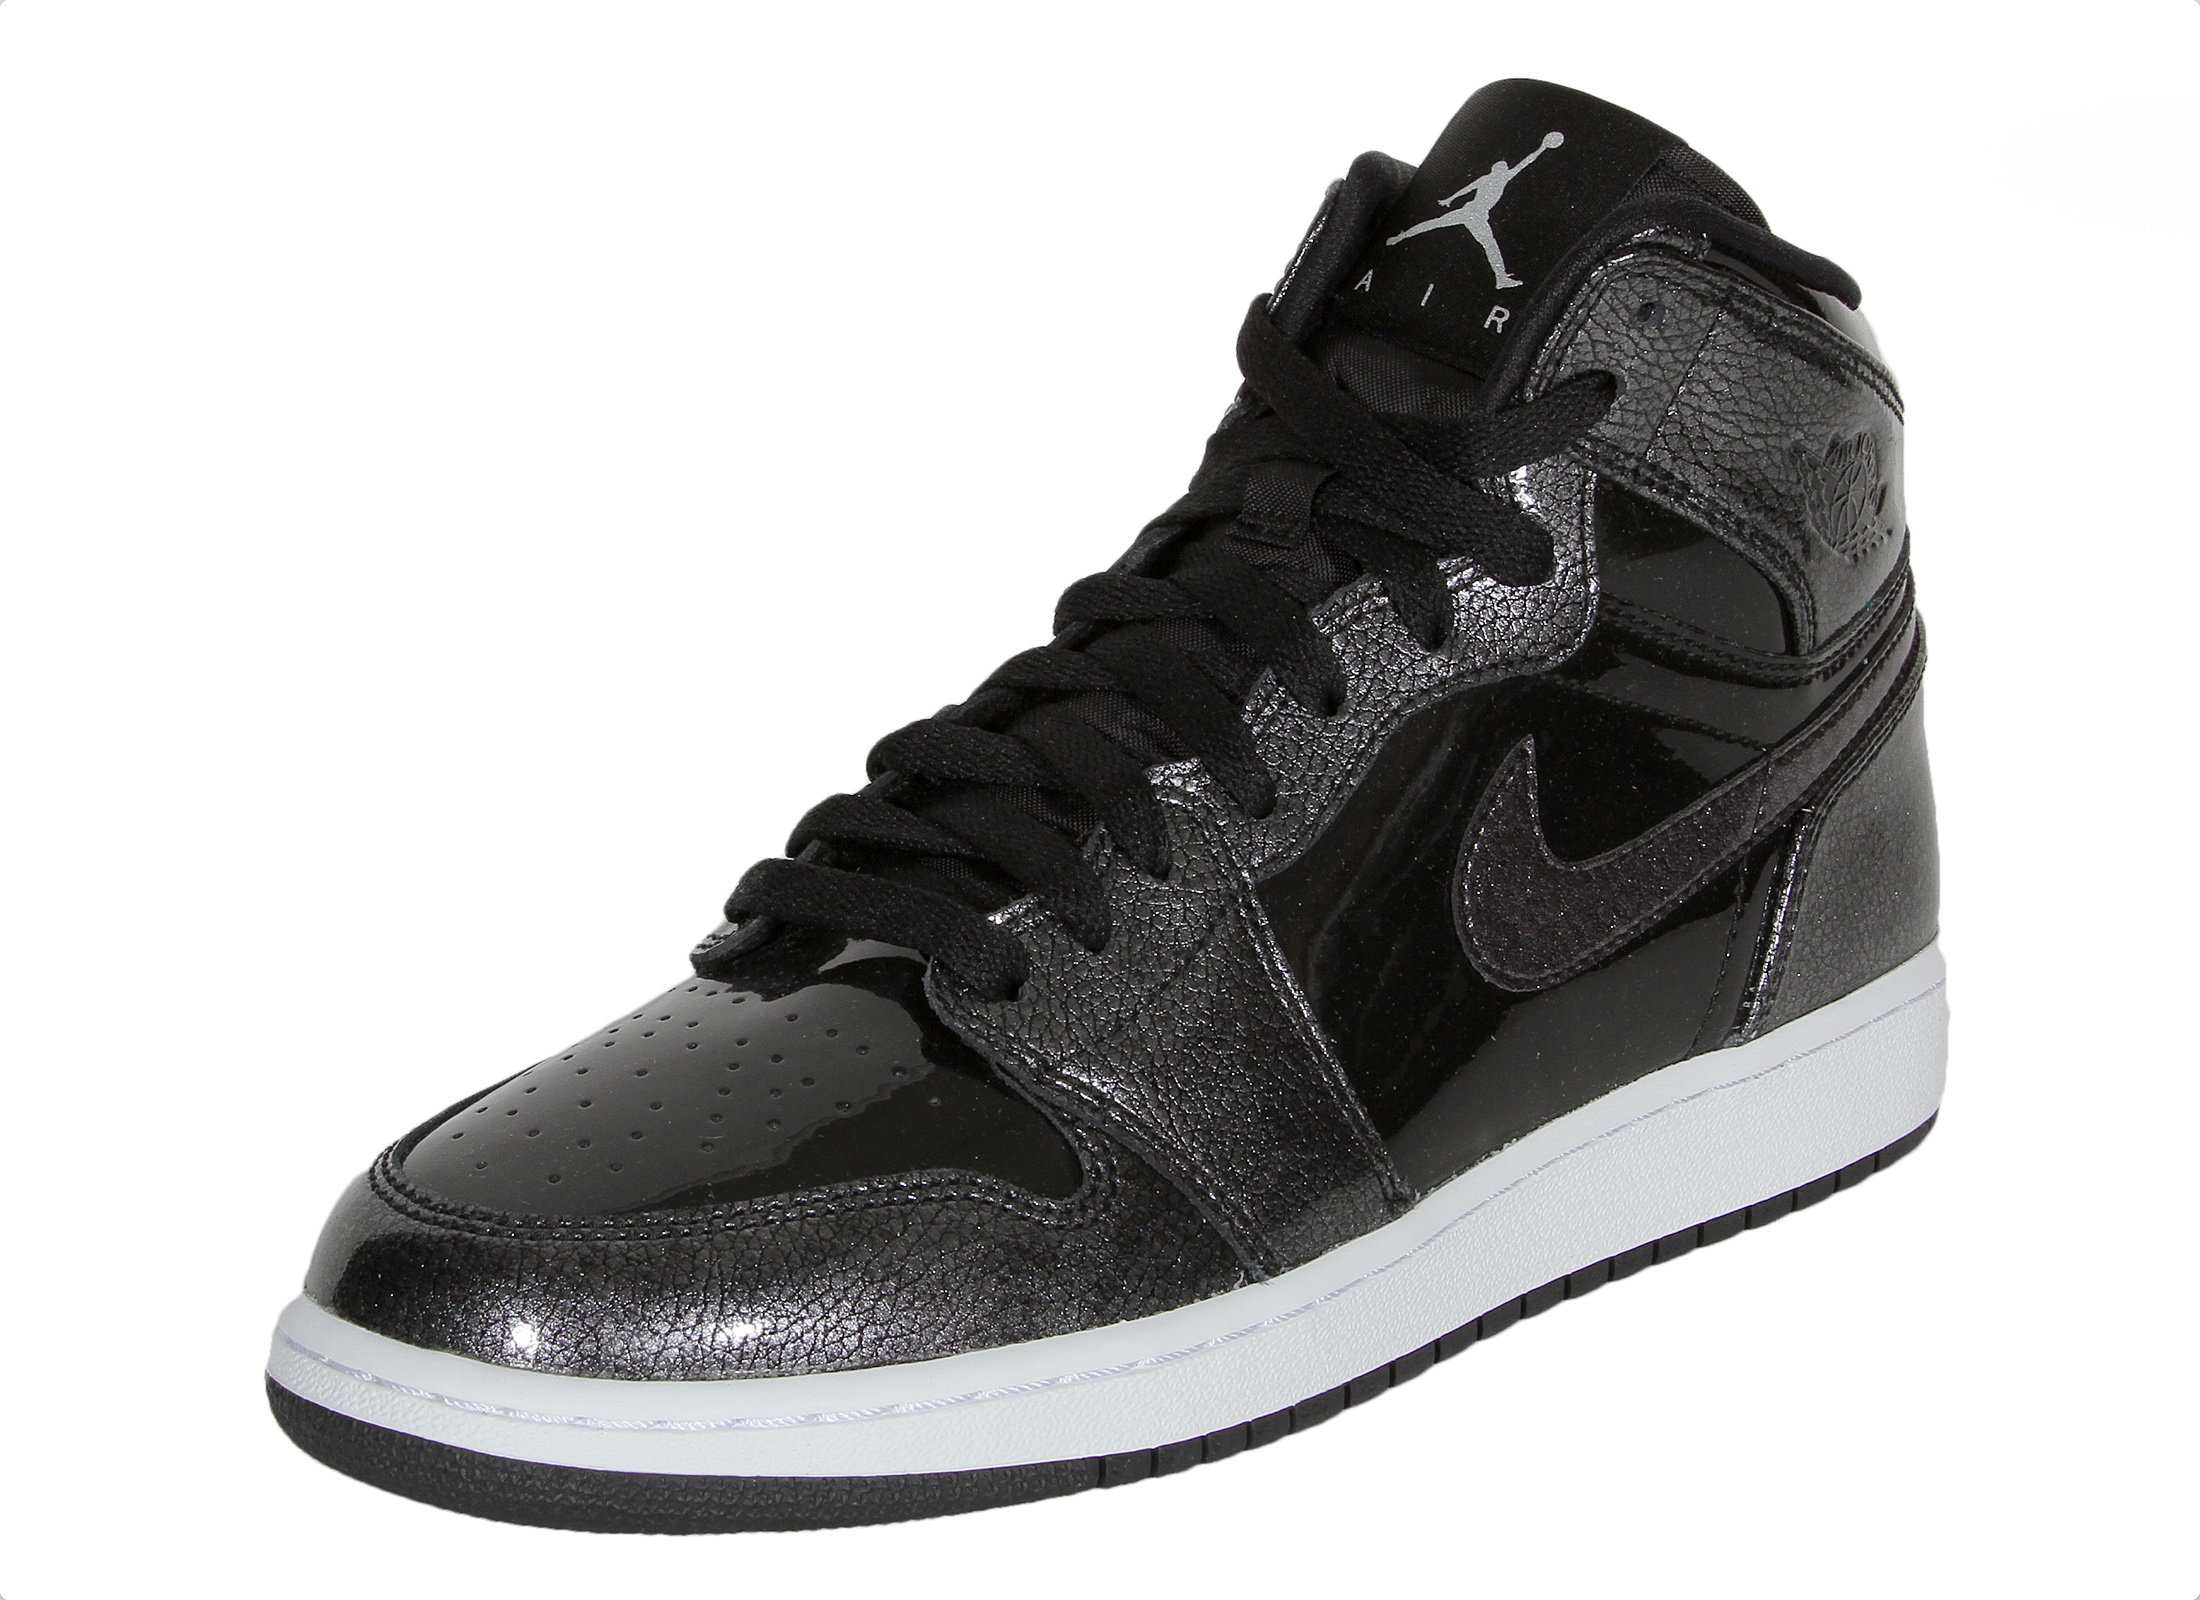 ca109f46f891 Buy 2 OFF ANY air jordan 1 retro high black and grey CASE AND GET 70% OFF!